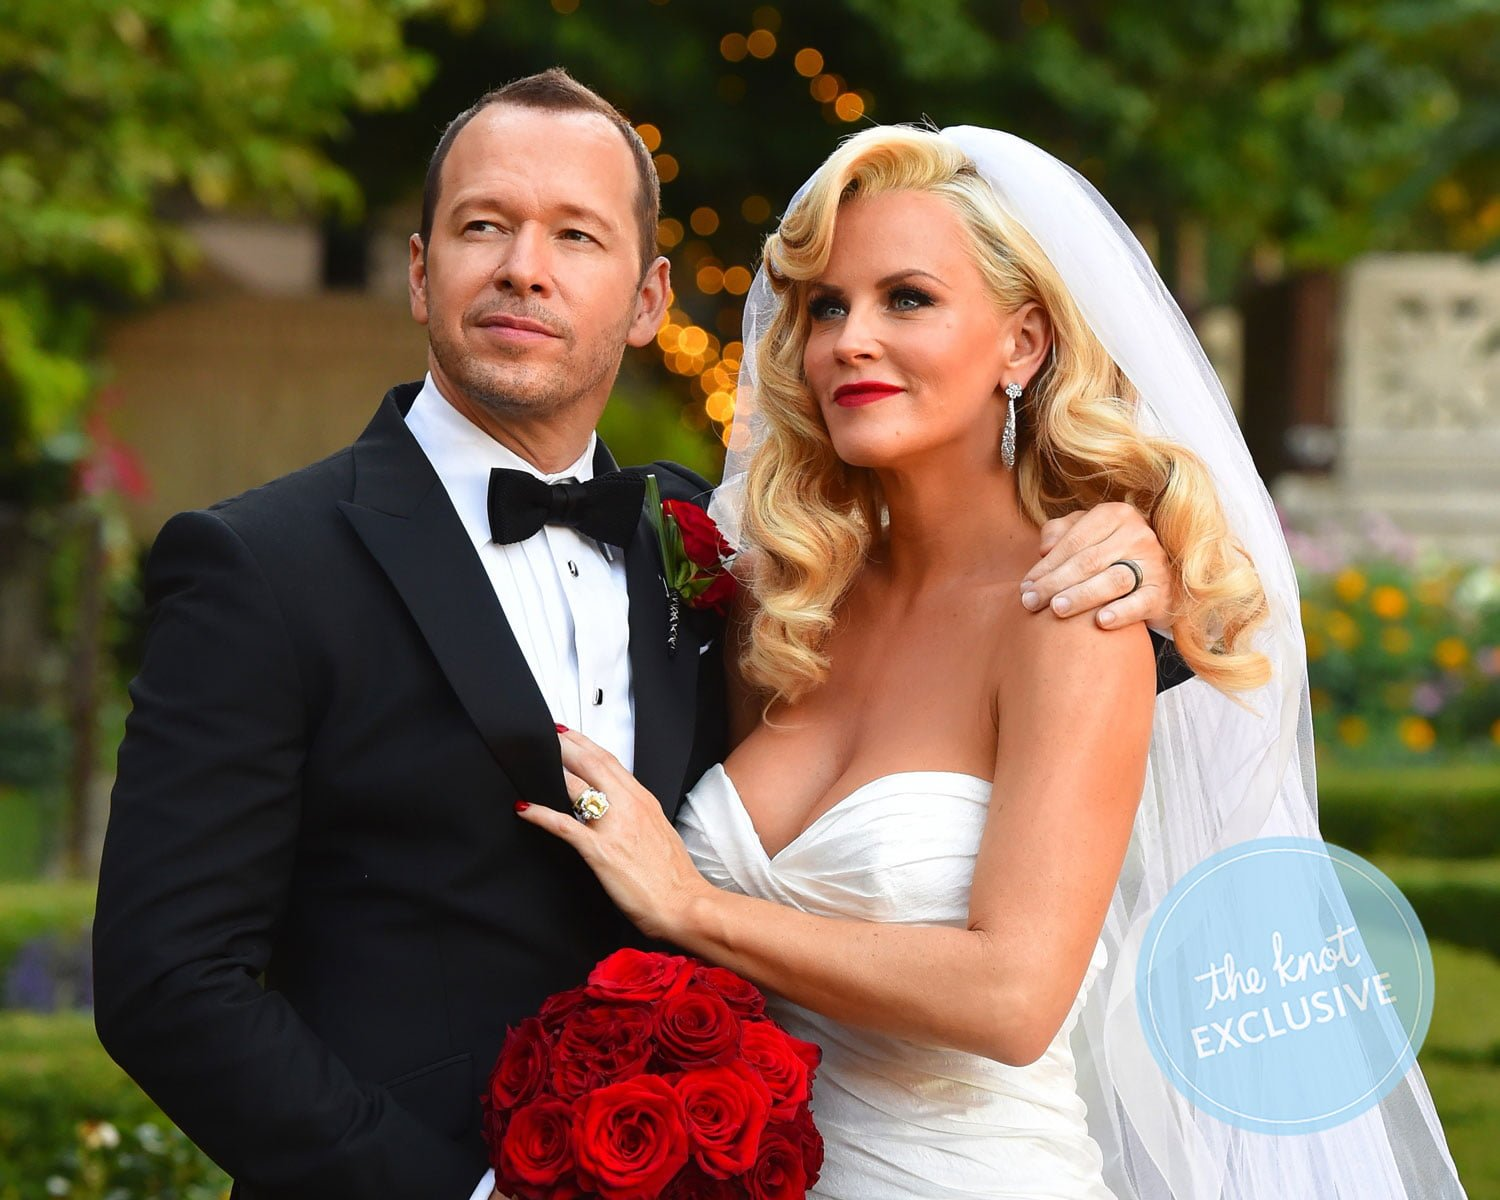 Donnie and McCarthy's wedding